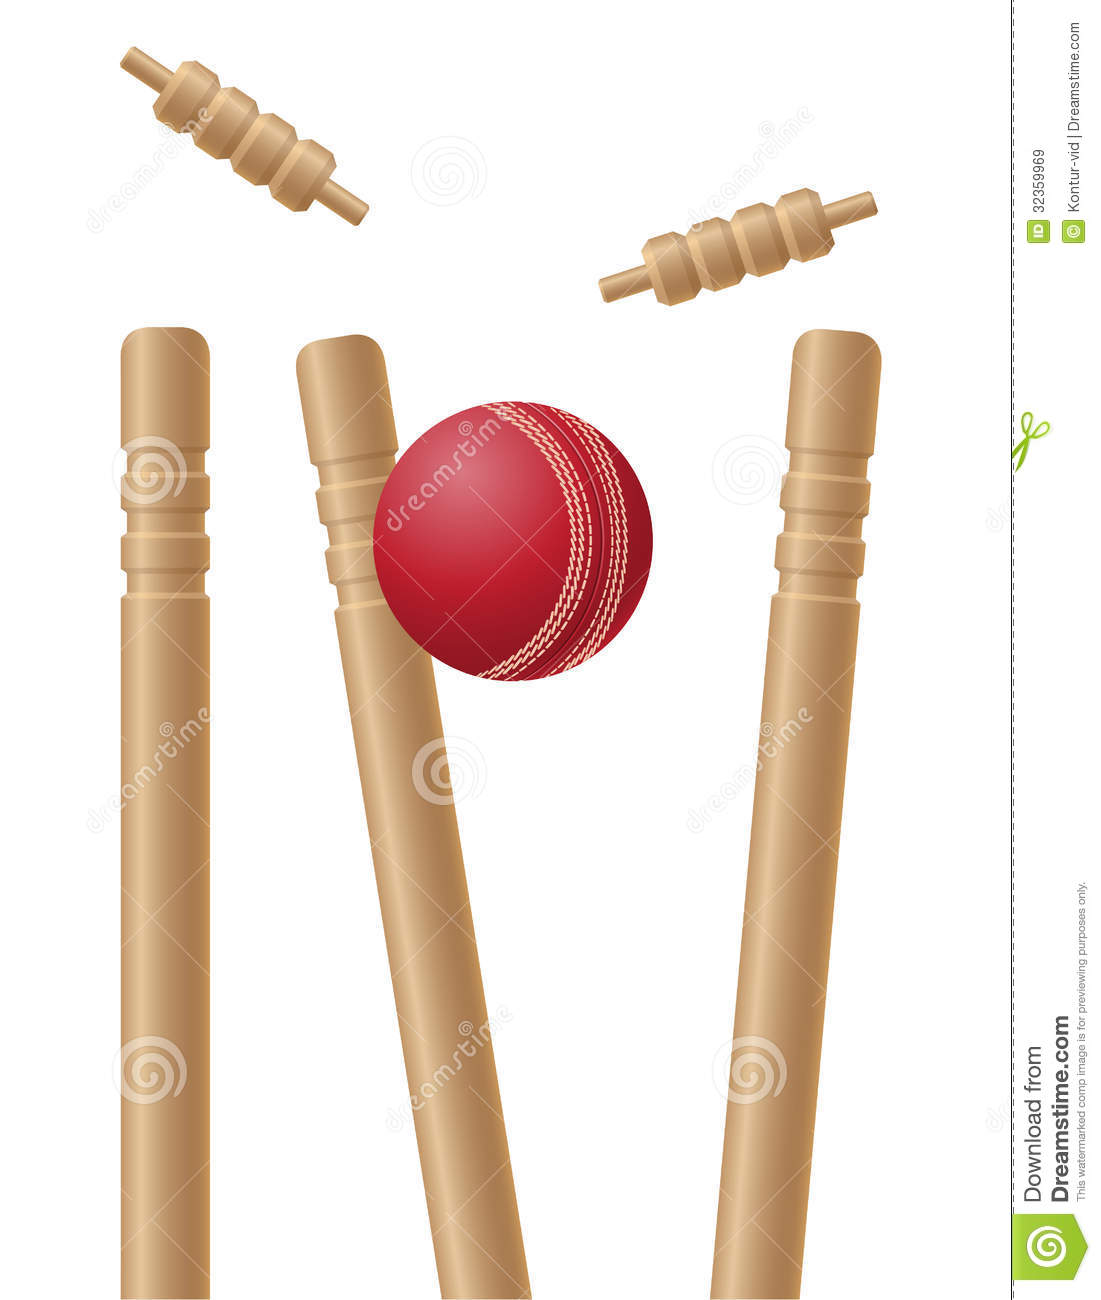 Wickets Clipart.